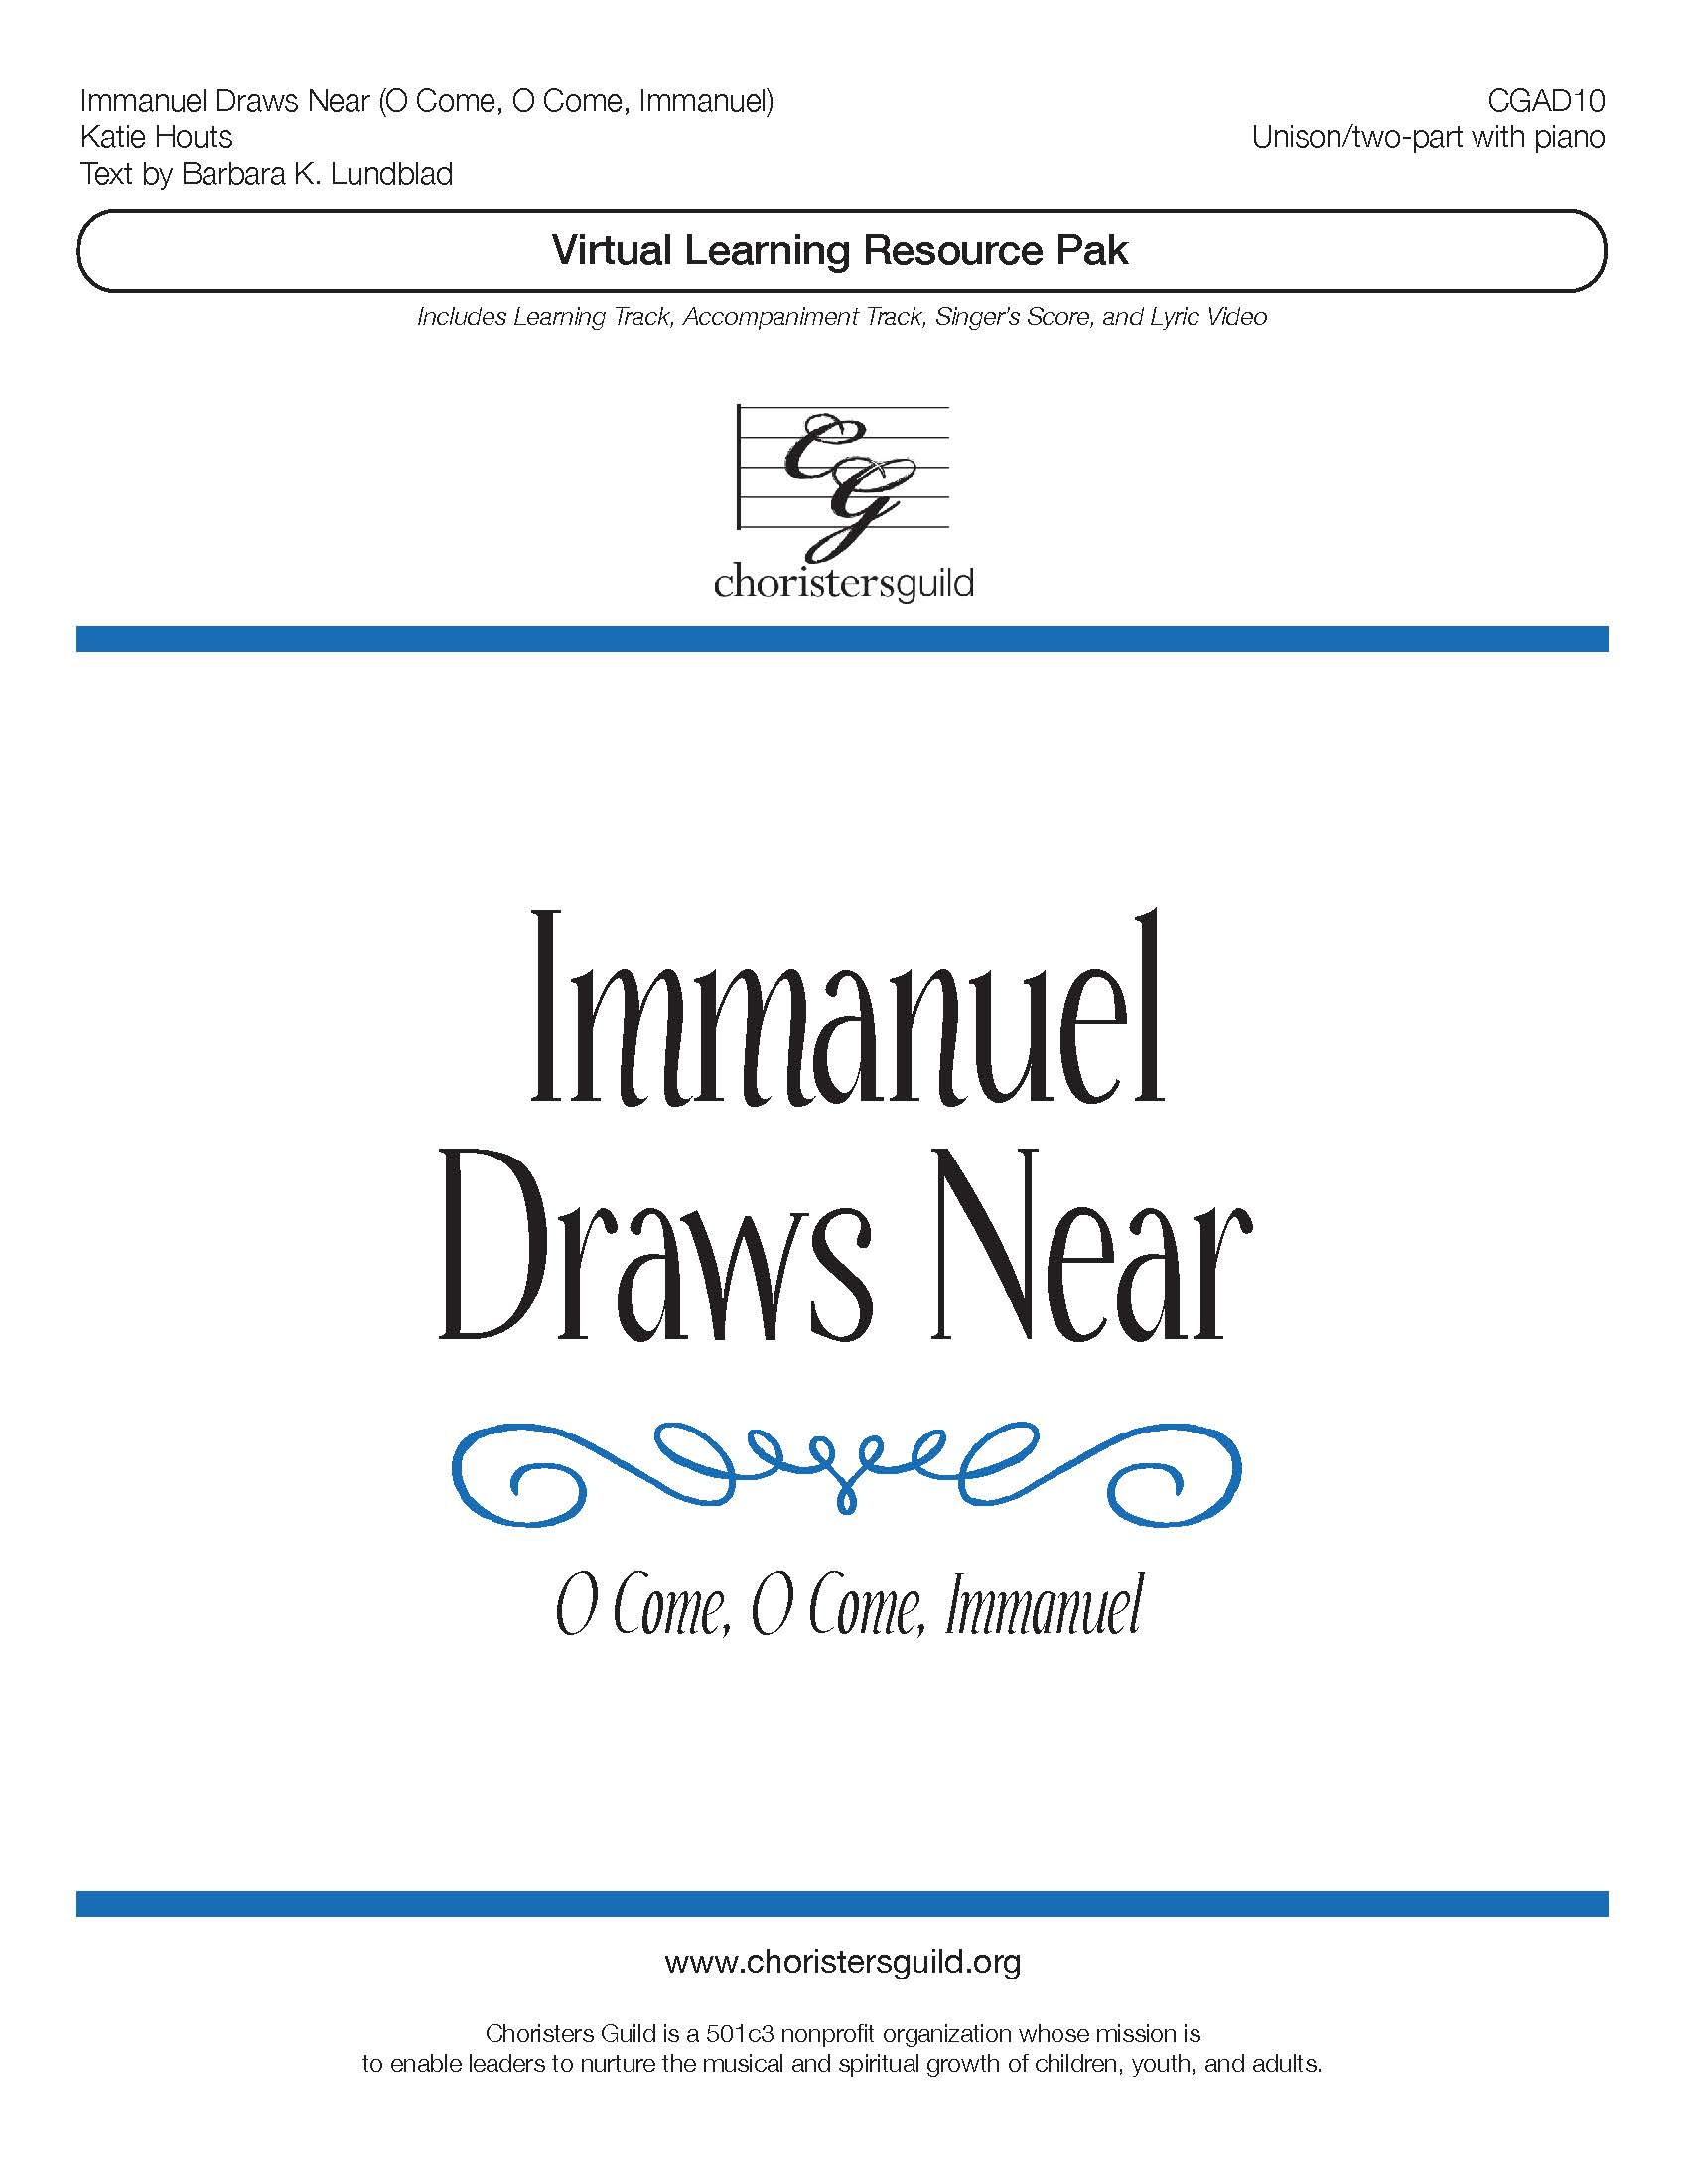 Immanuel Draws Near (Virtual Learning Resource Pak) - Unison